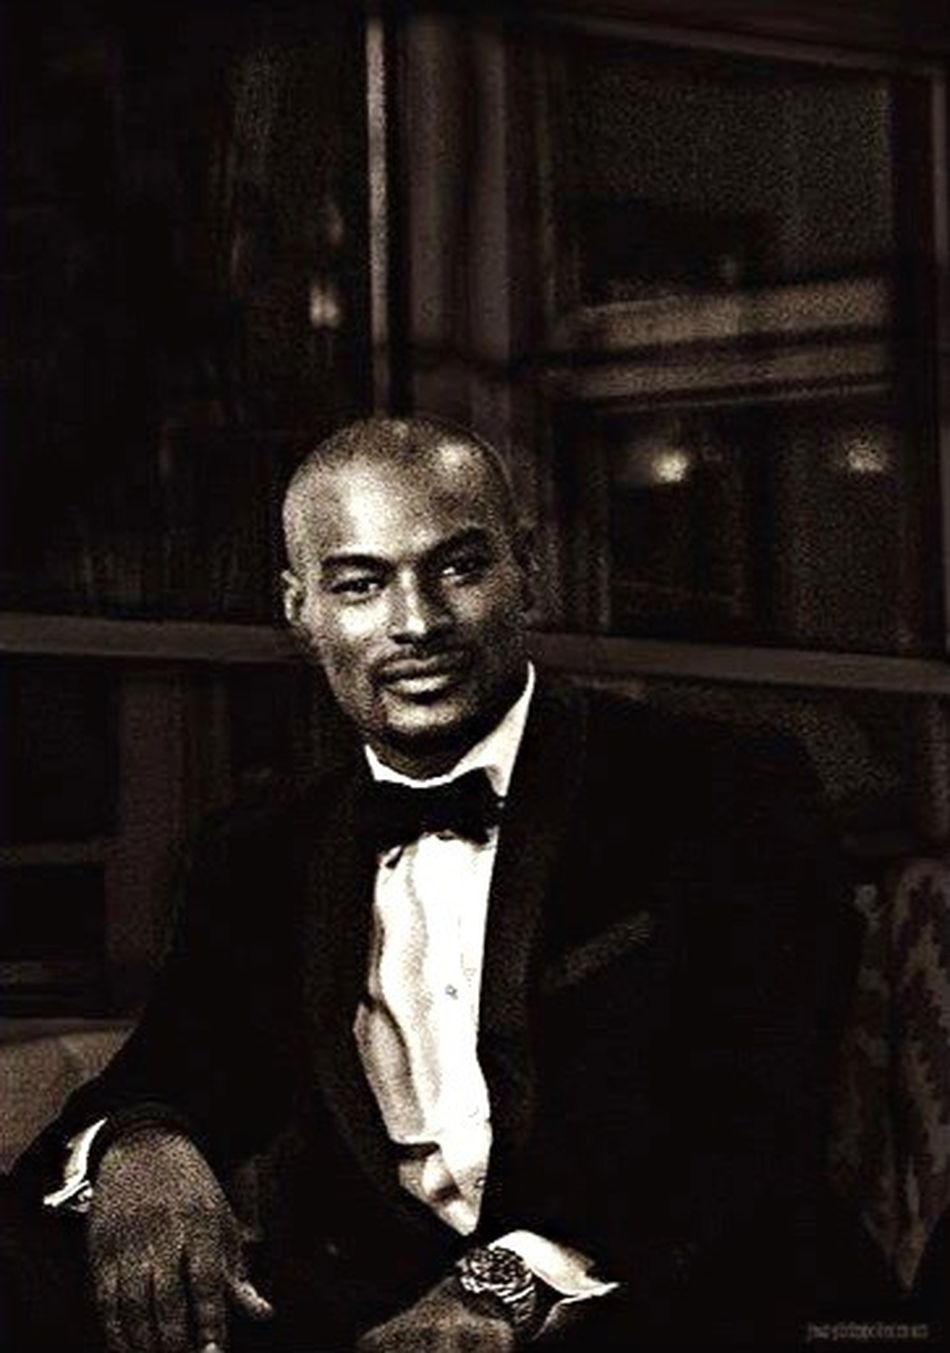 Tyson / NYC Portrait Of A Man  Black And White Clean Confidence  Model Tuxedo Portrait Celebrity Portraiture African American Portrait Of A Man  Top Model Formal Attire Backstage Canonphotography Grainyiscool